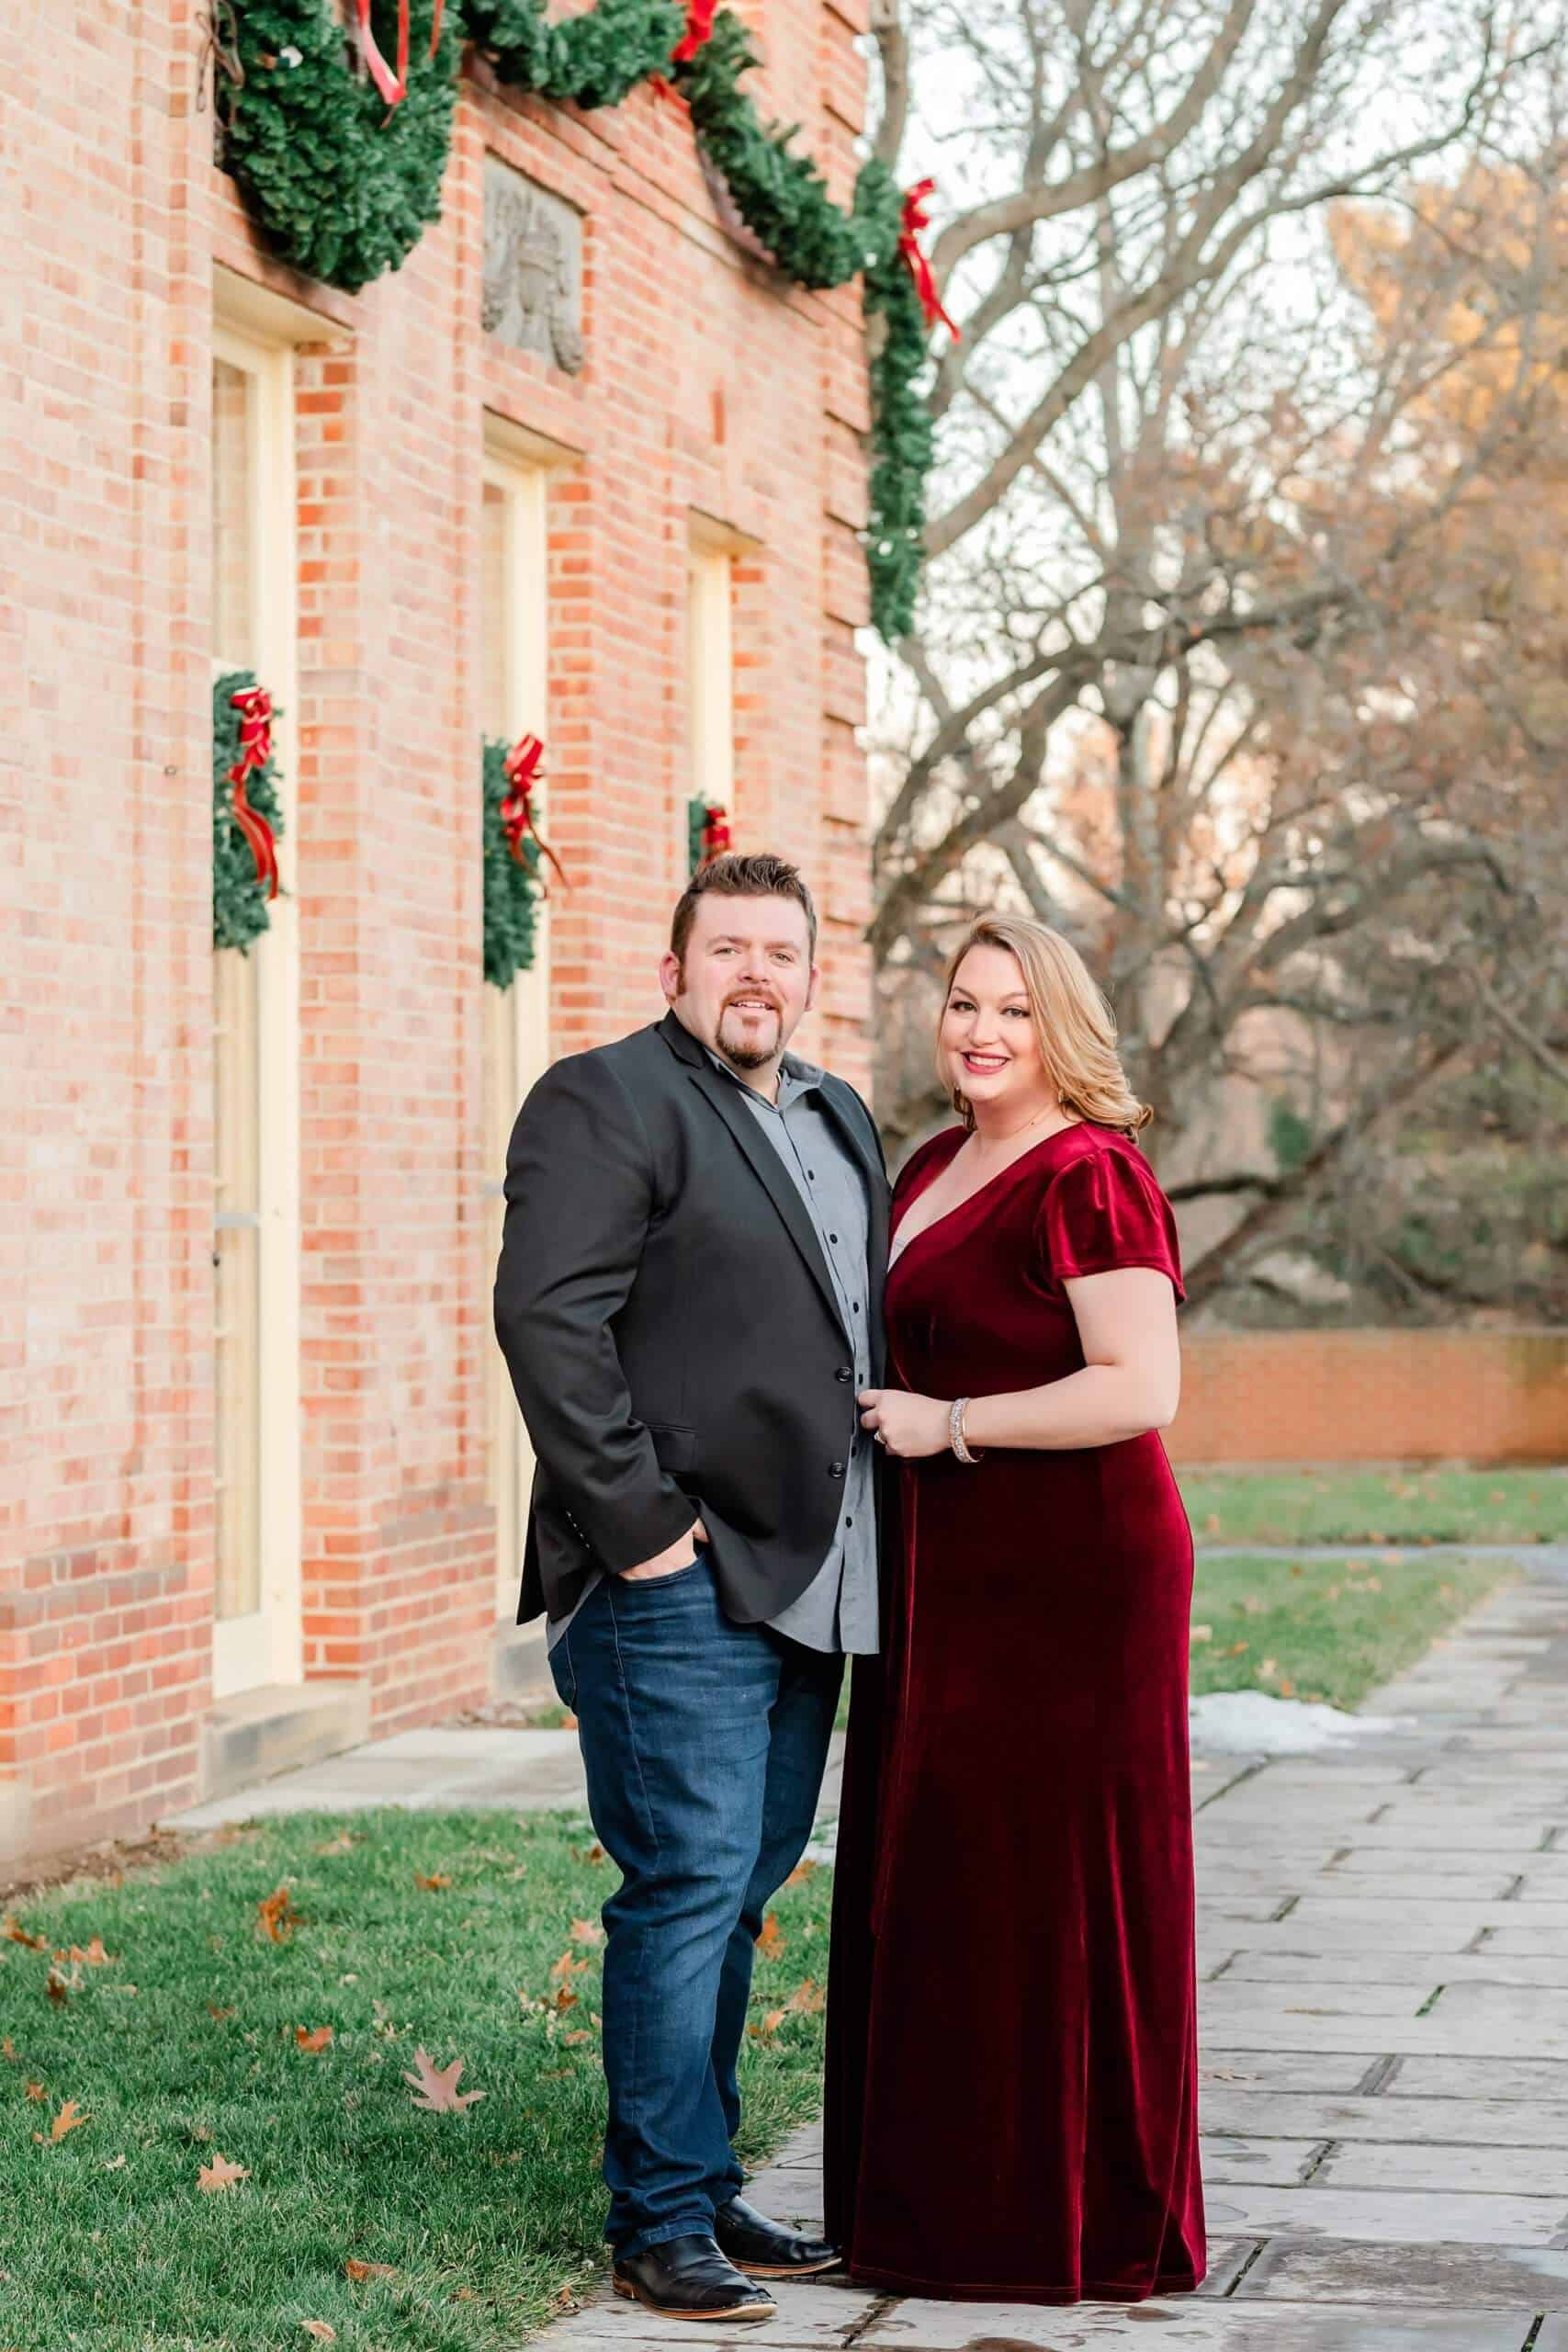 tiffany and craig murray mansfield ohio wedding photographer